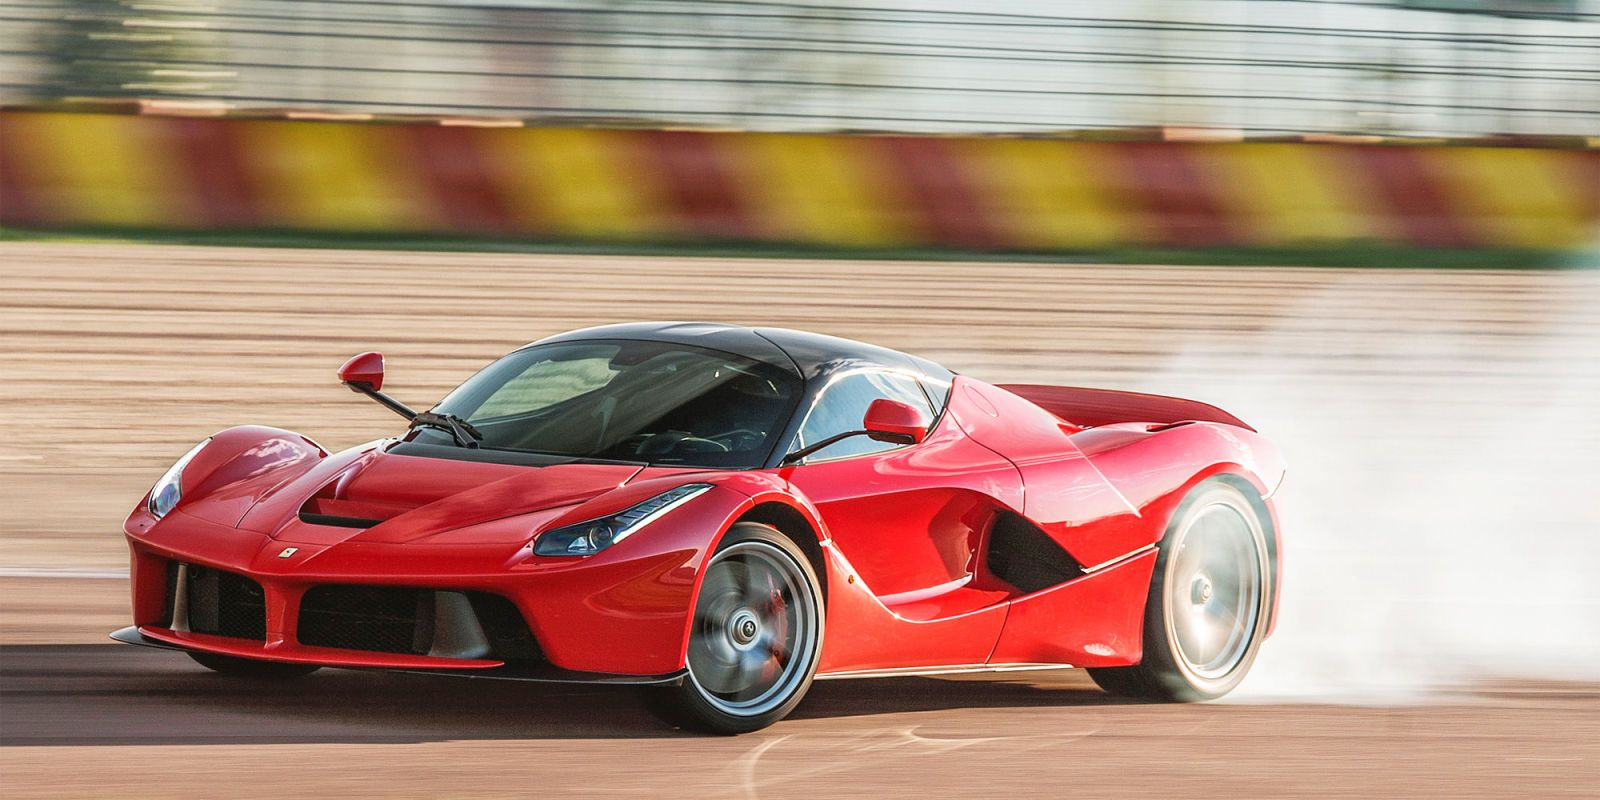 The LaFerrari Is A $1.3 Million, 949 Hp Rocket. Itu0027s Also The Fastest Car  Weu0027ve Ever Tested.